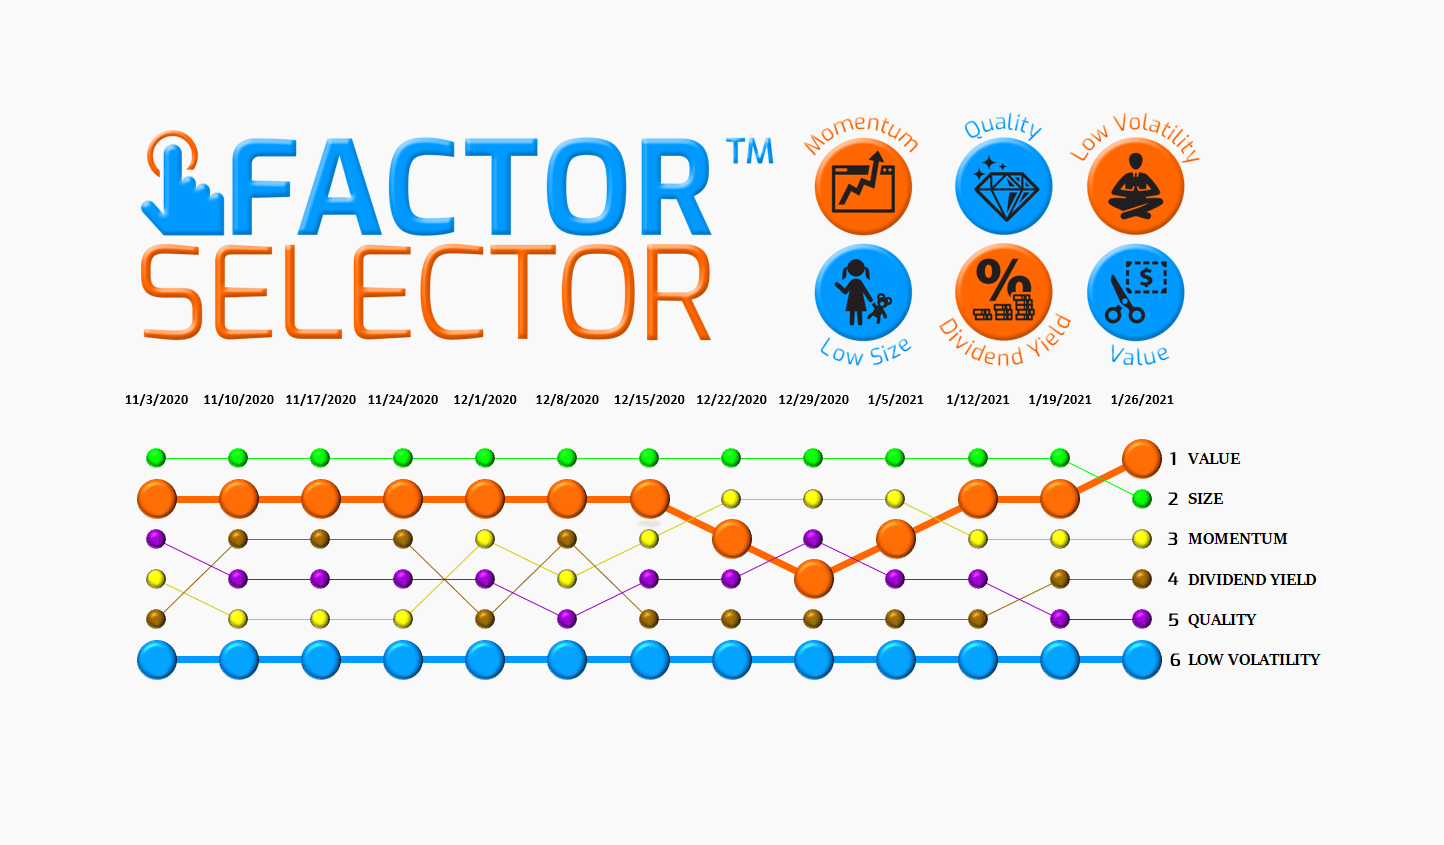 Factor Selector™  – 01/27/21 via @https://www.pinterest.com/market_scholars